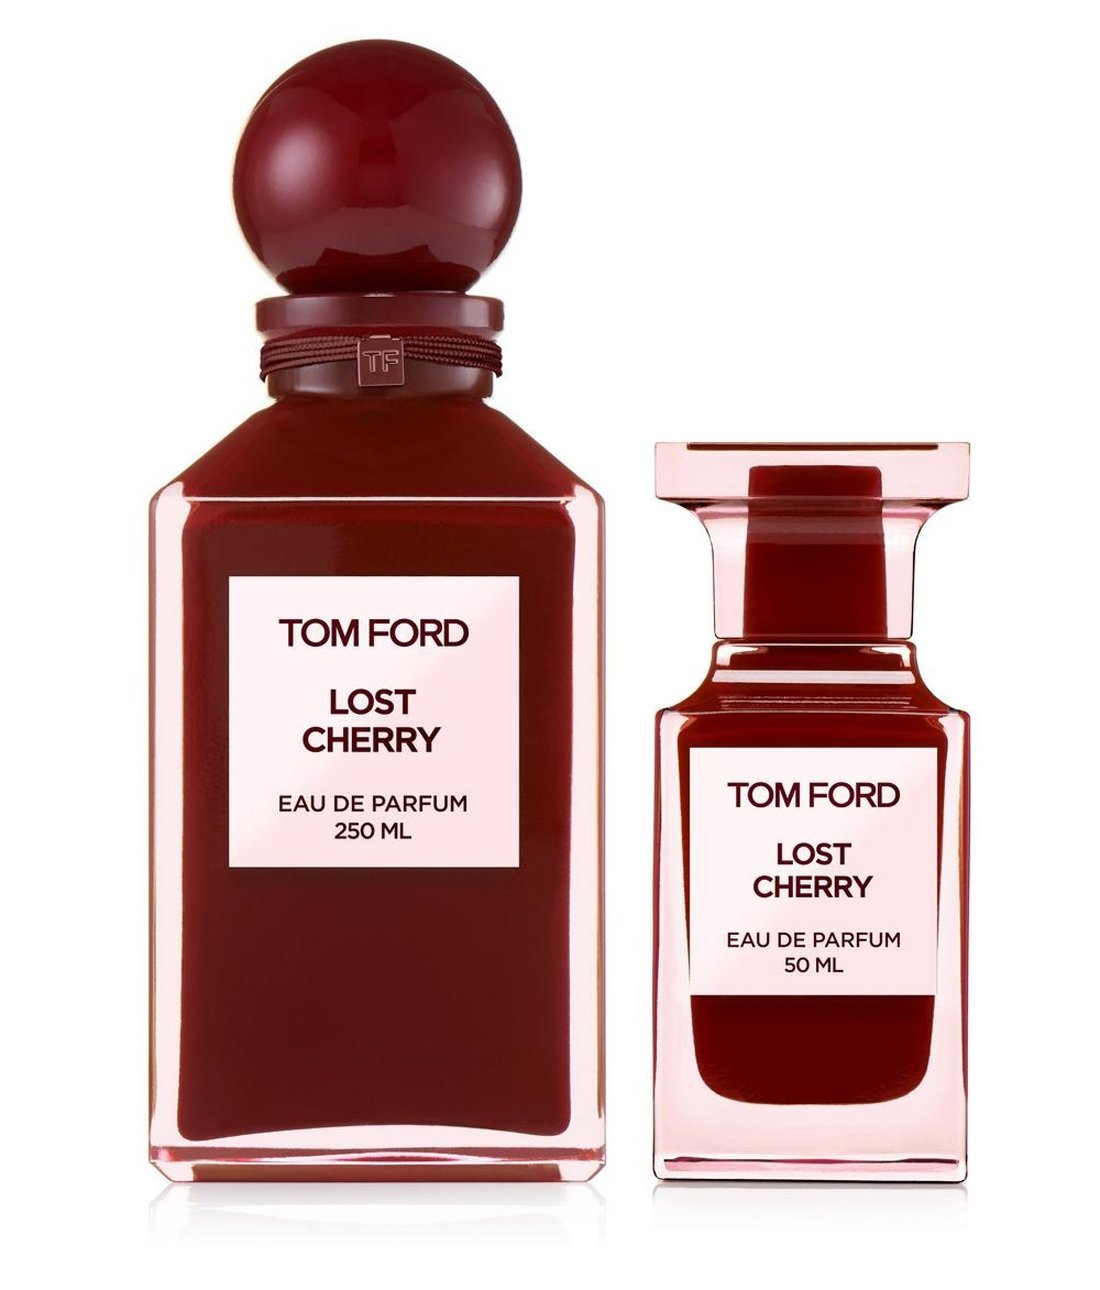 tom ford lost cherry reviews and rating. Black Bedroom Furniture Sets. Home Design Ideas